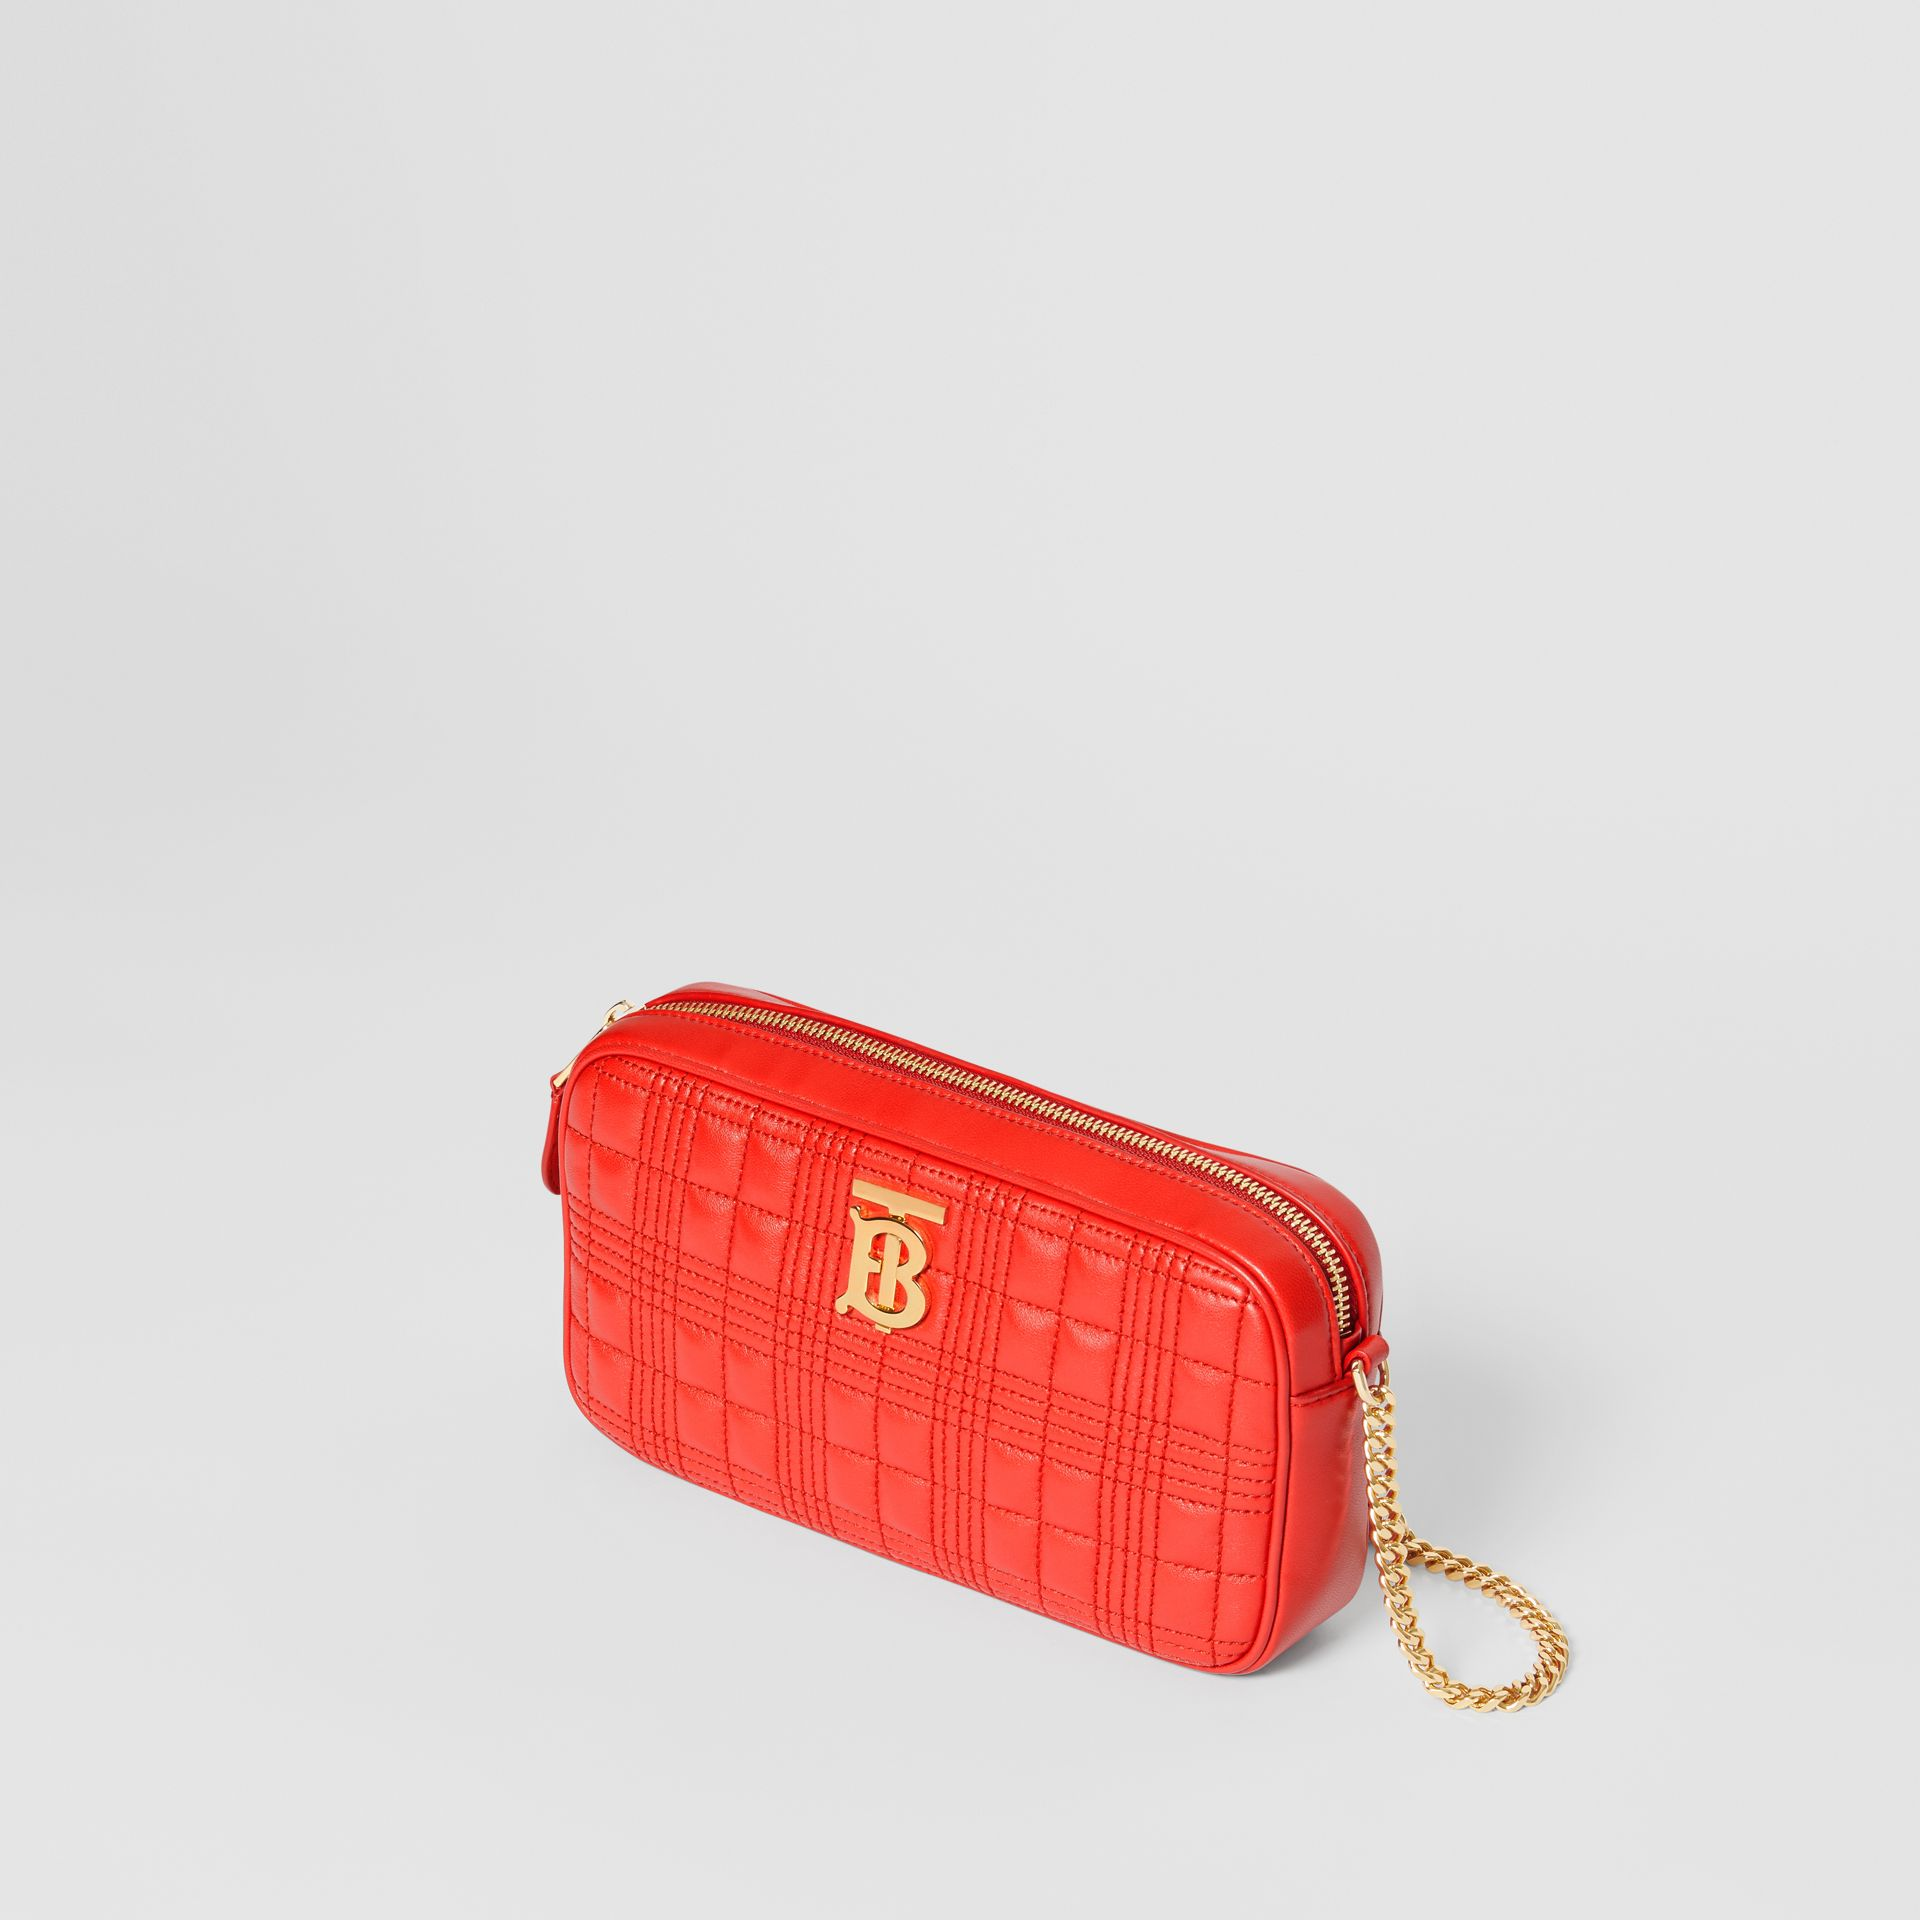 Quilted Lambskin Camera Bag in Bright Red - Women | Burberry Singapore - gallery image 3